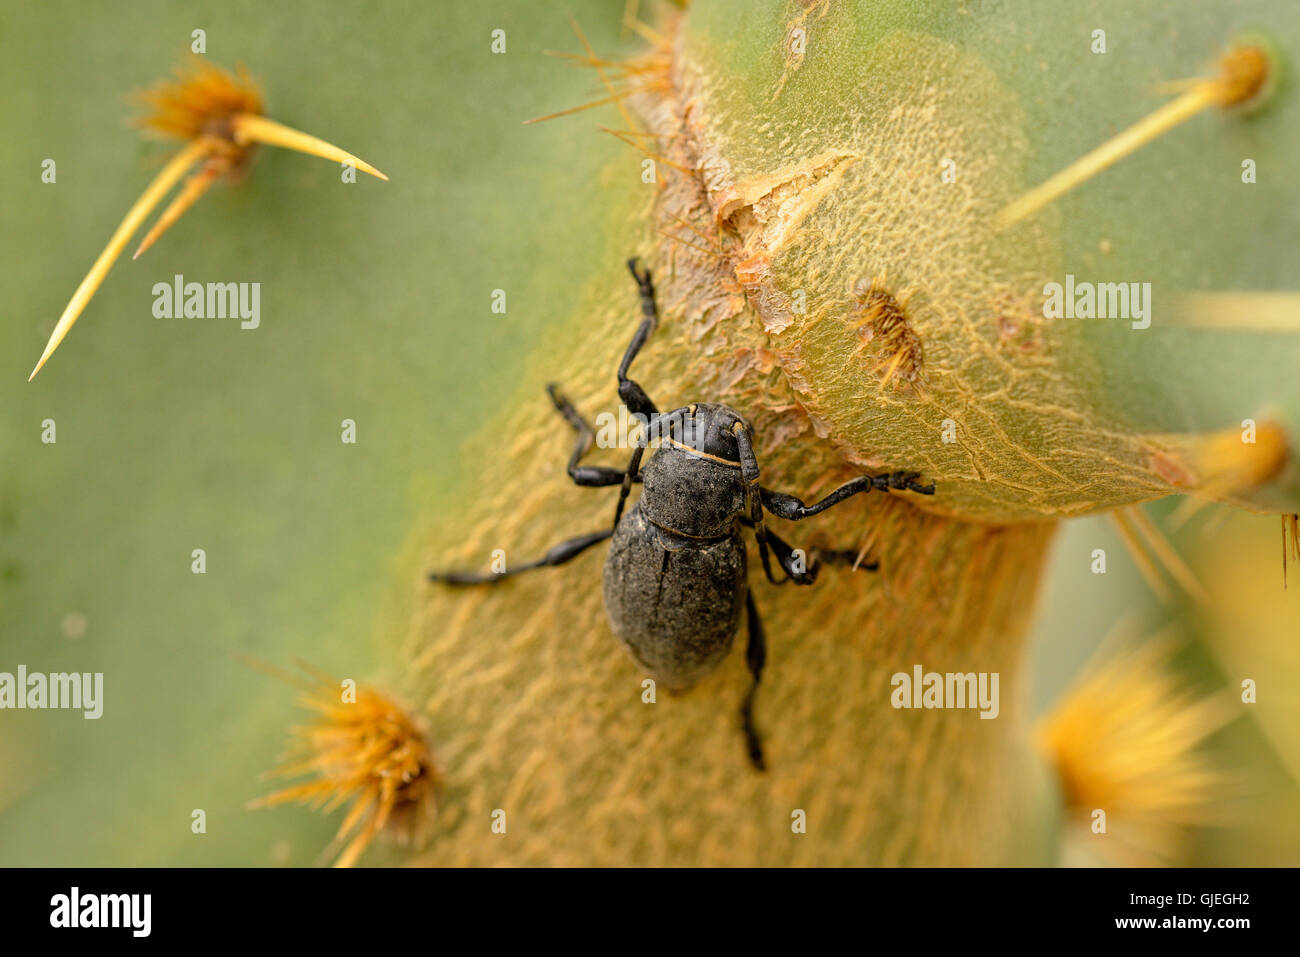 Cactus long-horned beetle (Moneilema spp.), Rio Grande City, Texas, USA - Stock Image